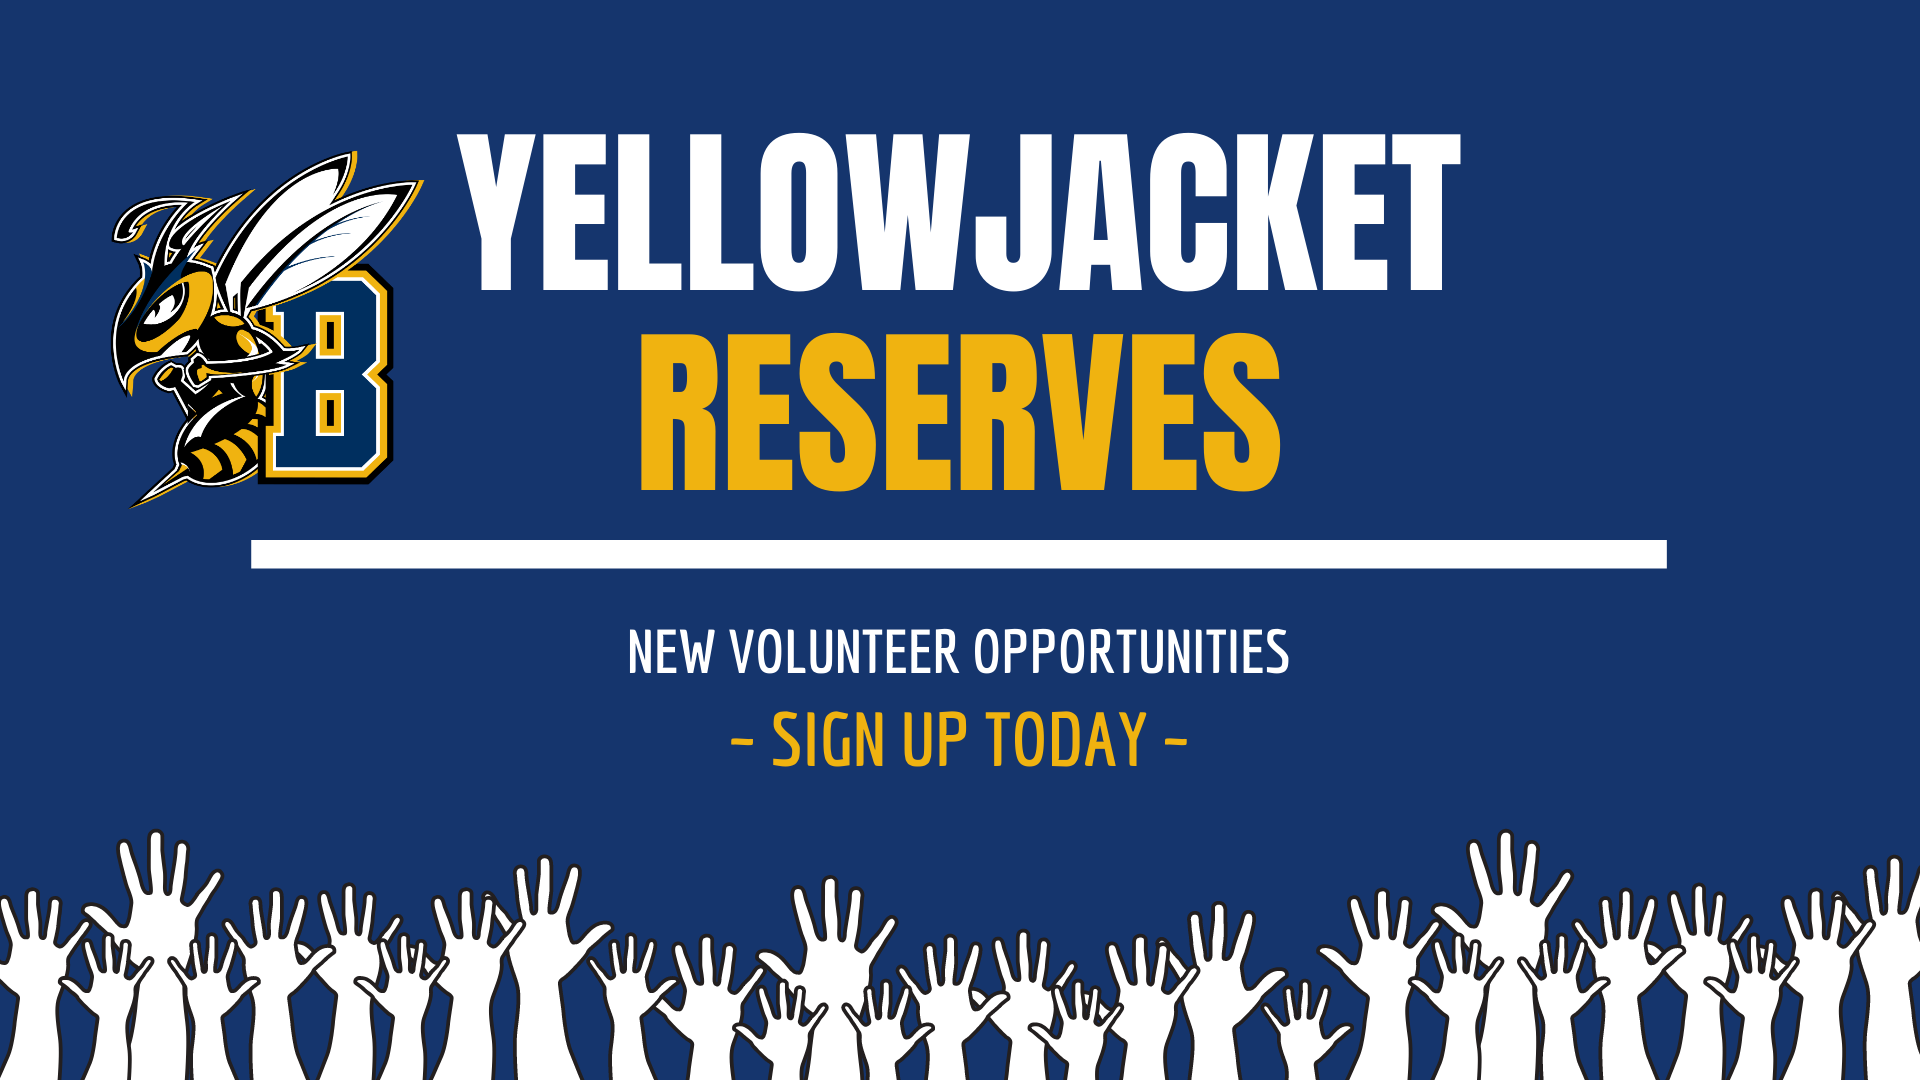 YELLOWJACKET RESERVES NEW VOLUNTEER OPPORTUNITIES SIGN UP TODAY